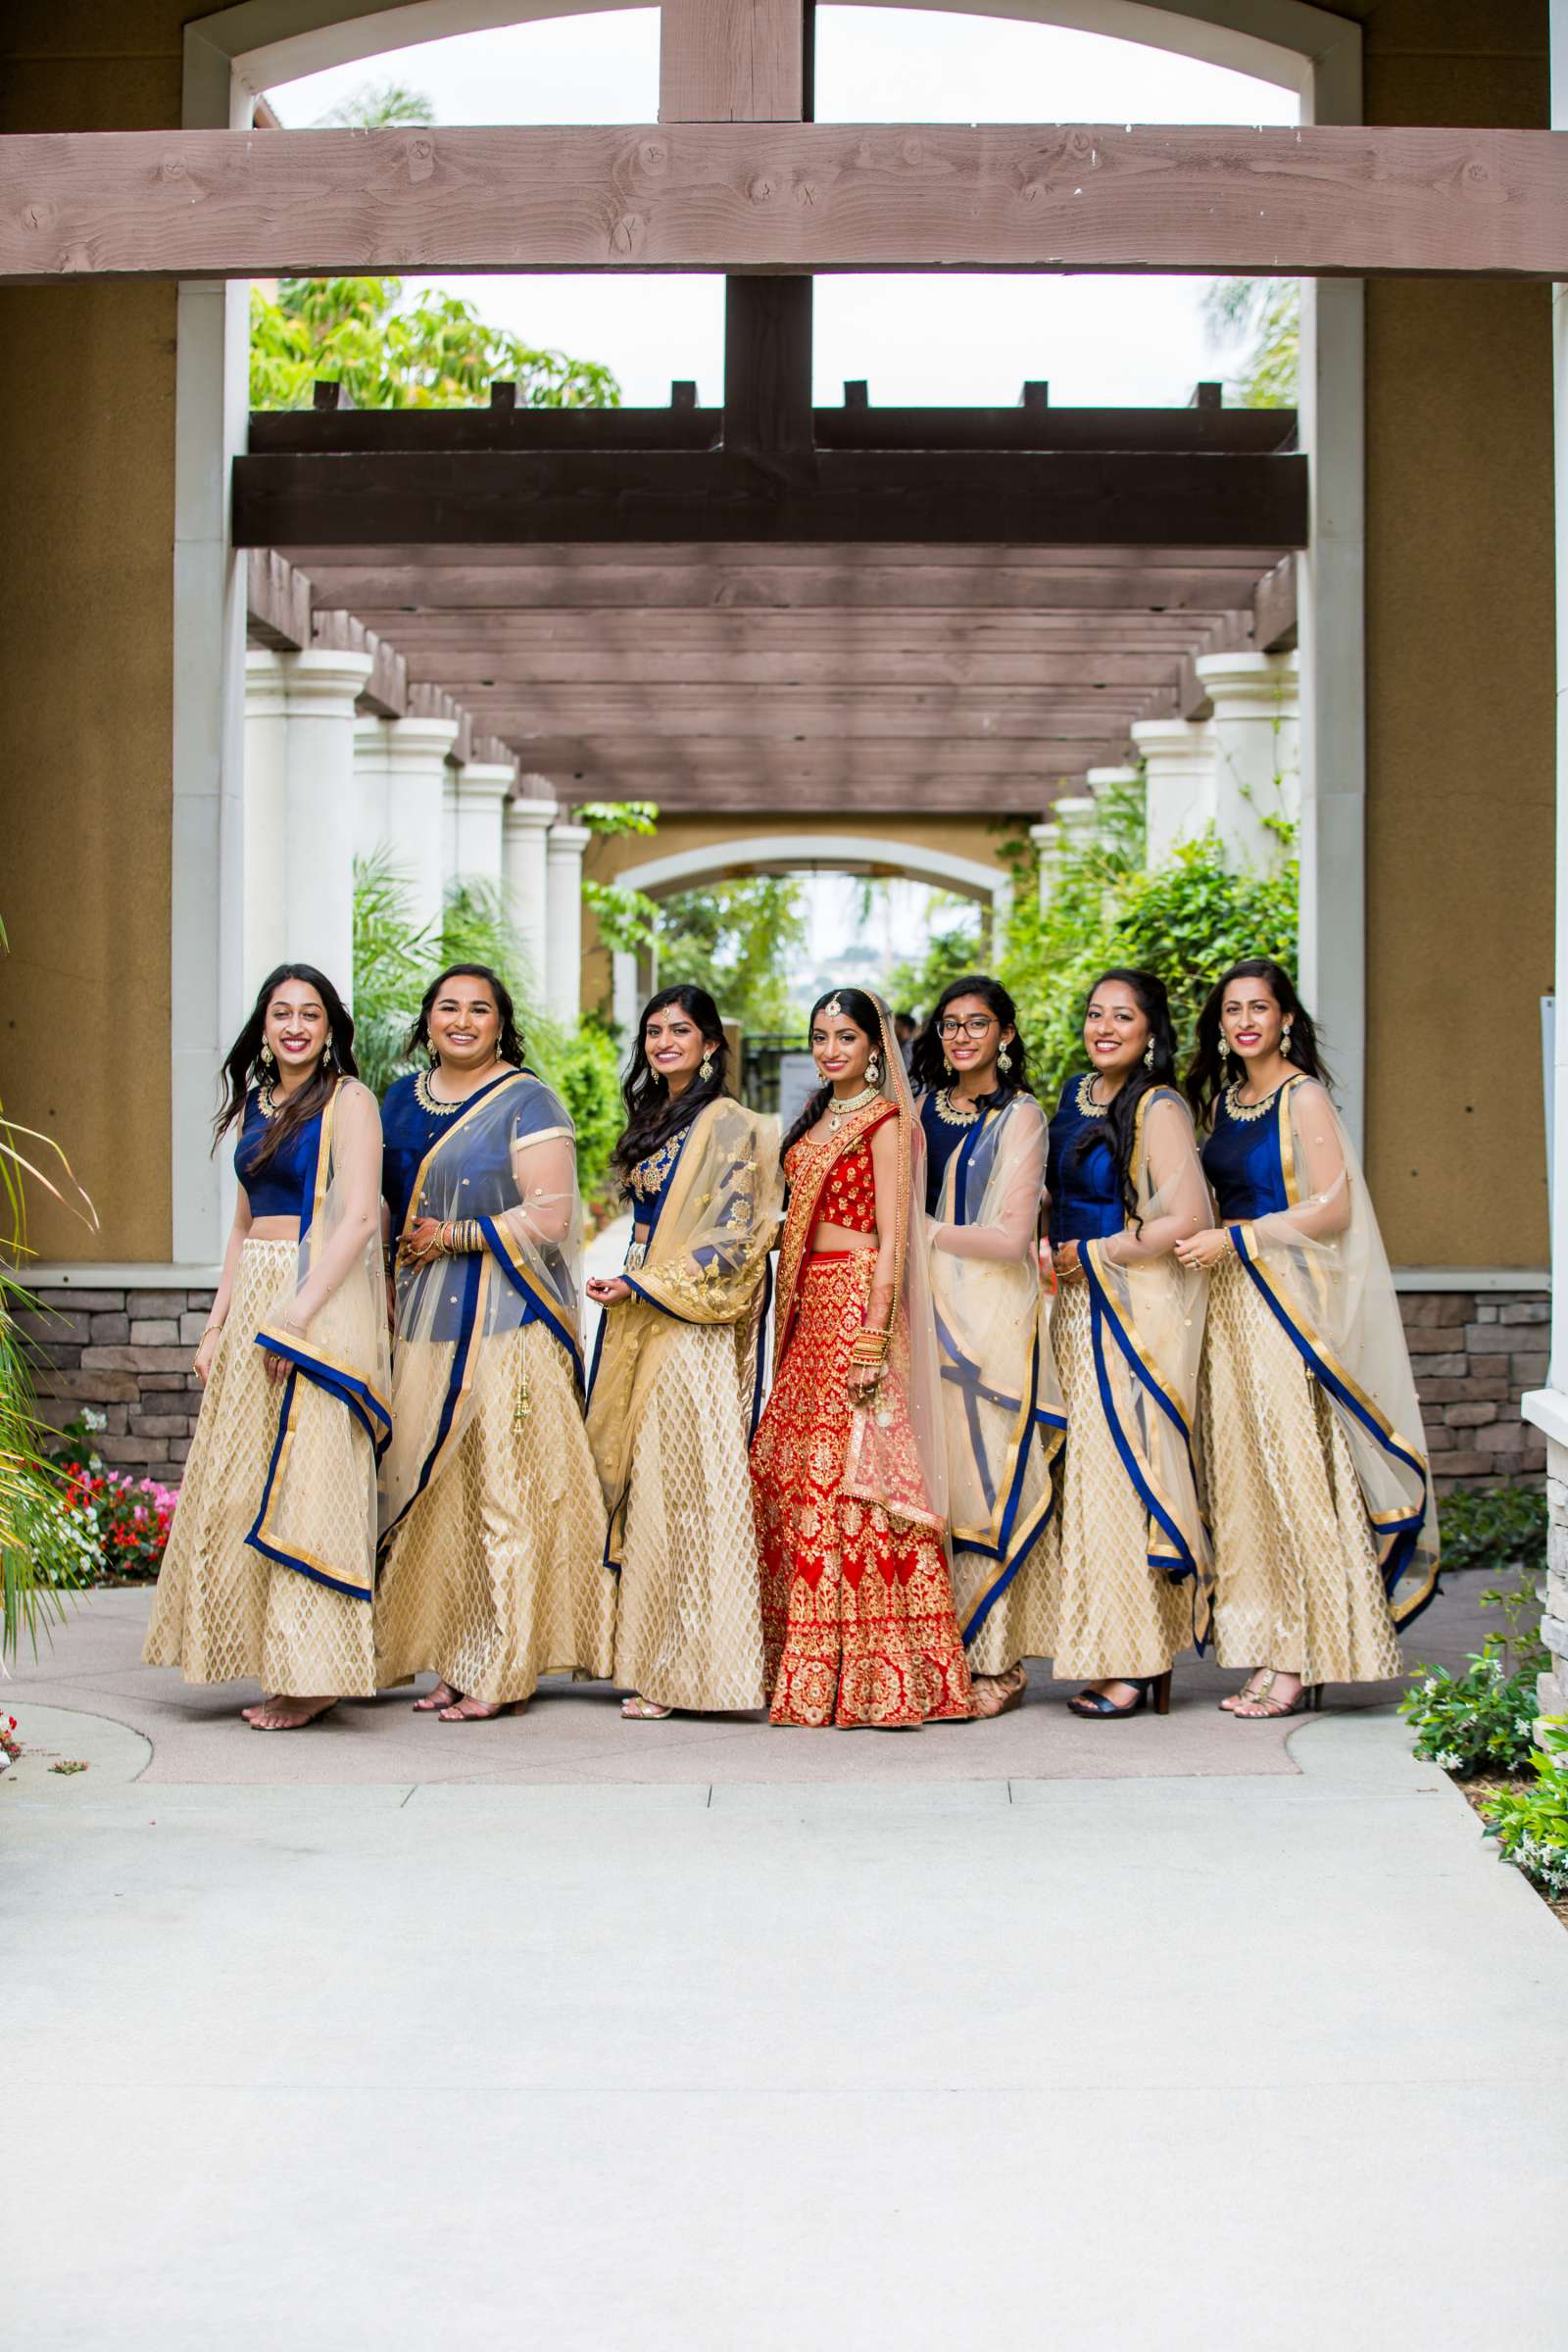 The Westin Carlsbad Resort and Spa Wedding coordinated by Shilpa Patel Events, Ami and Amit Wedding Photo #178 by True Photography